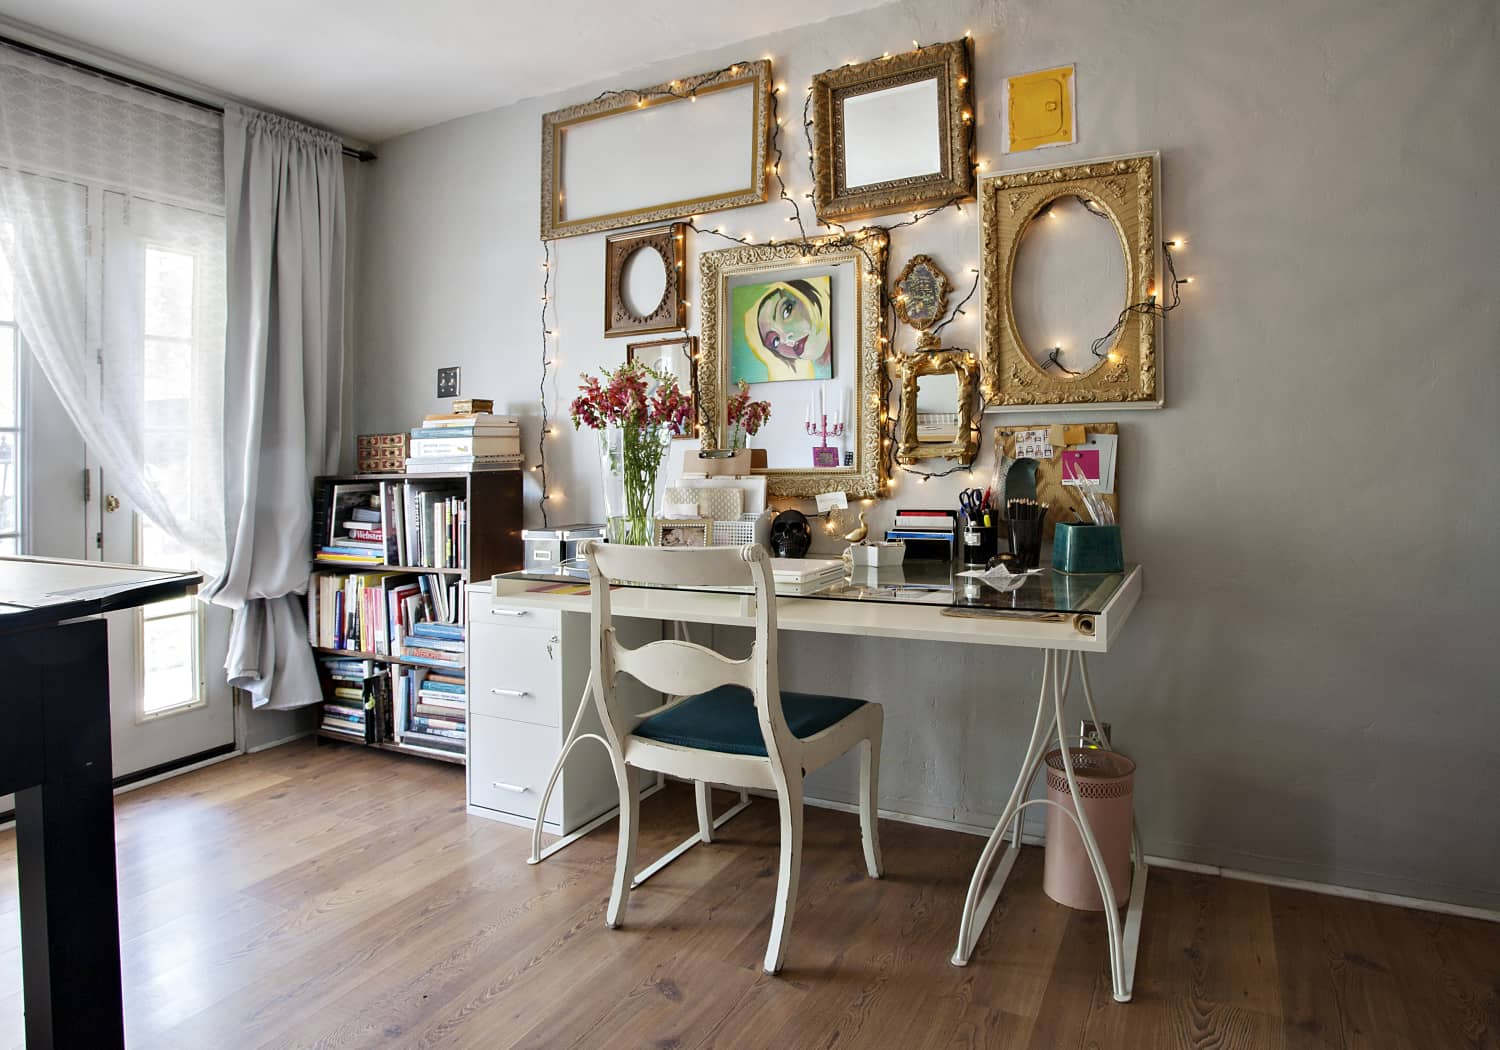 Design Inspiration: Gallery Walls of Mirrors